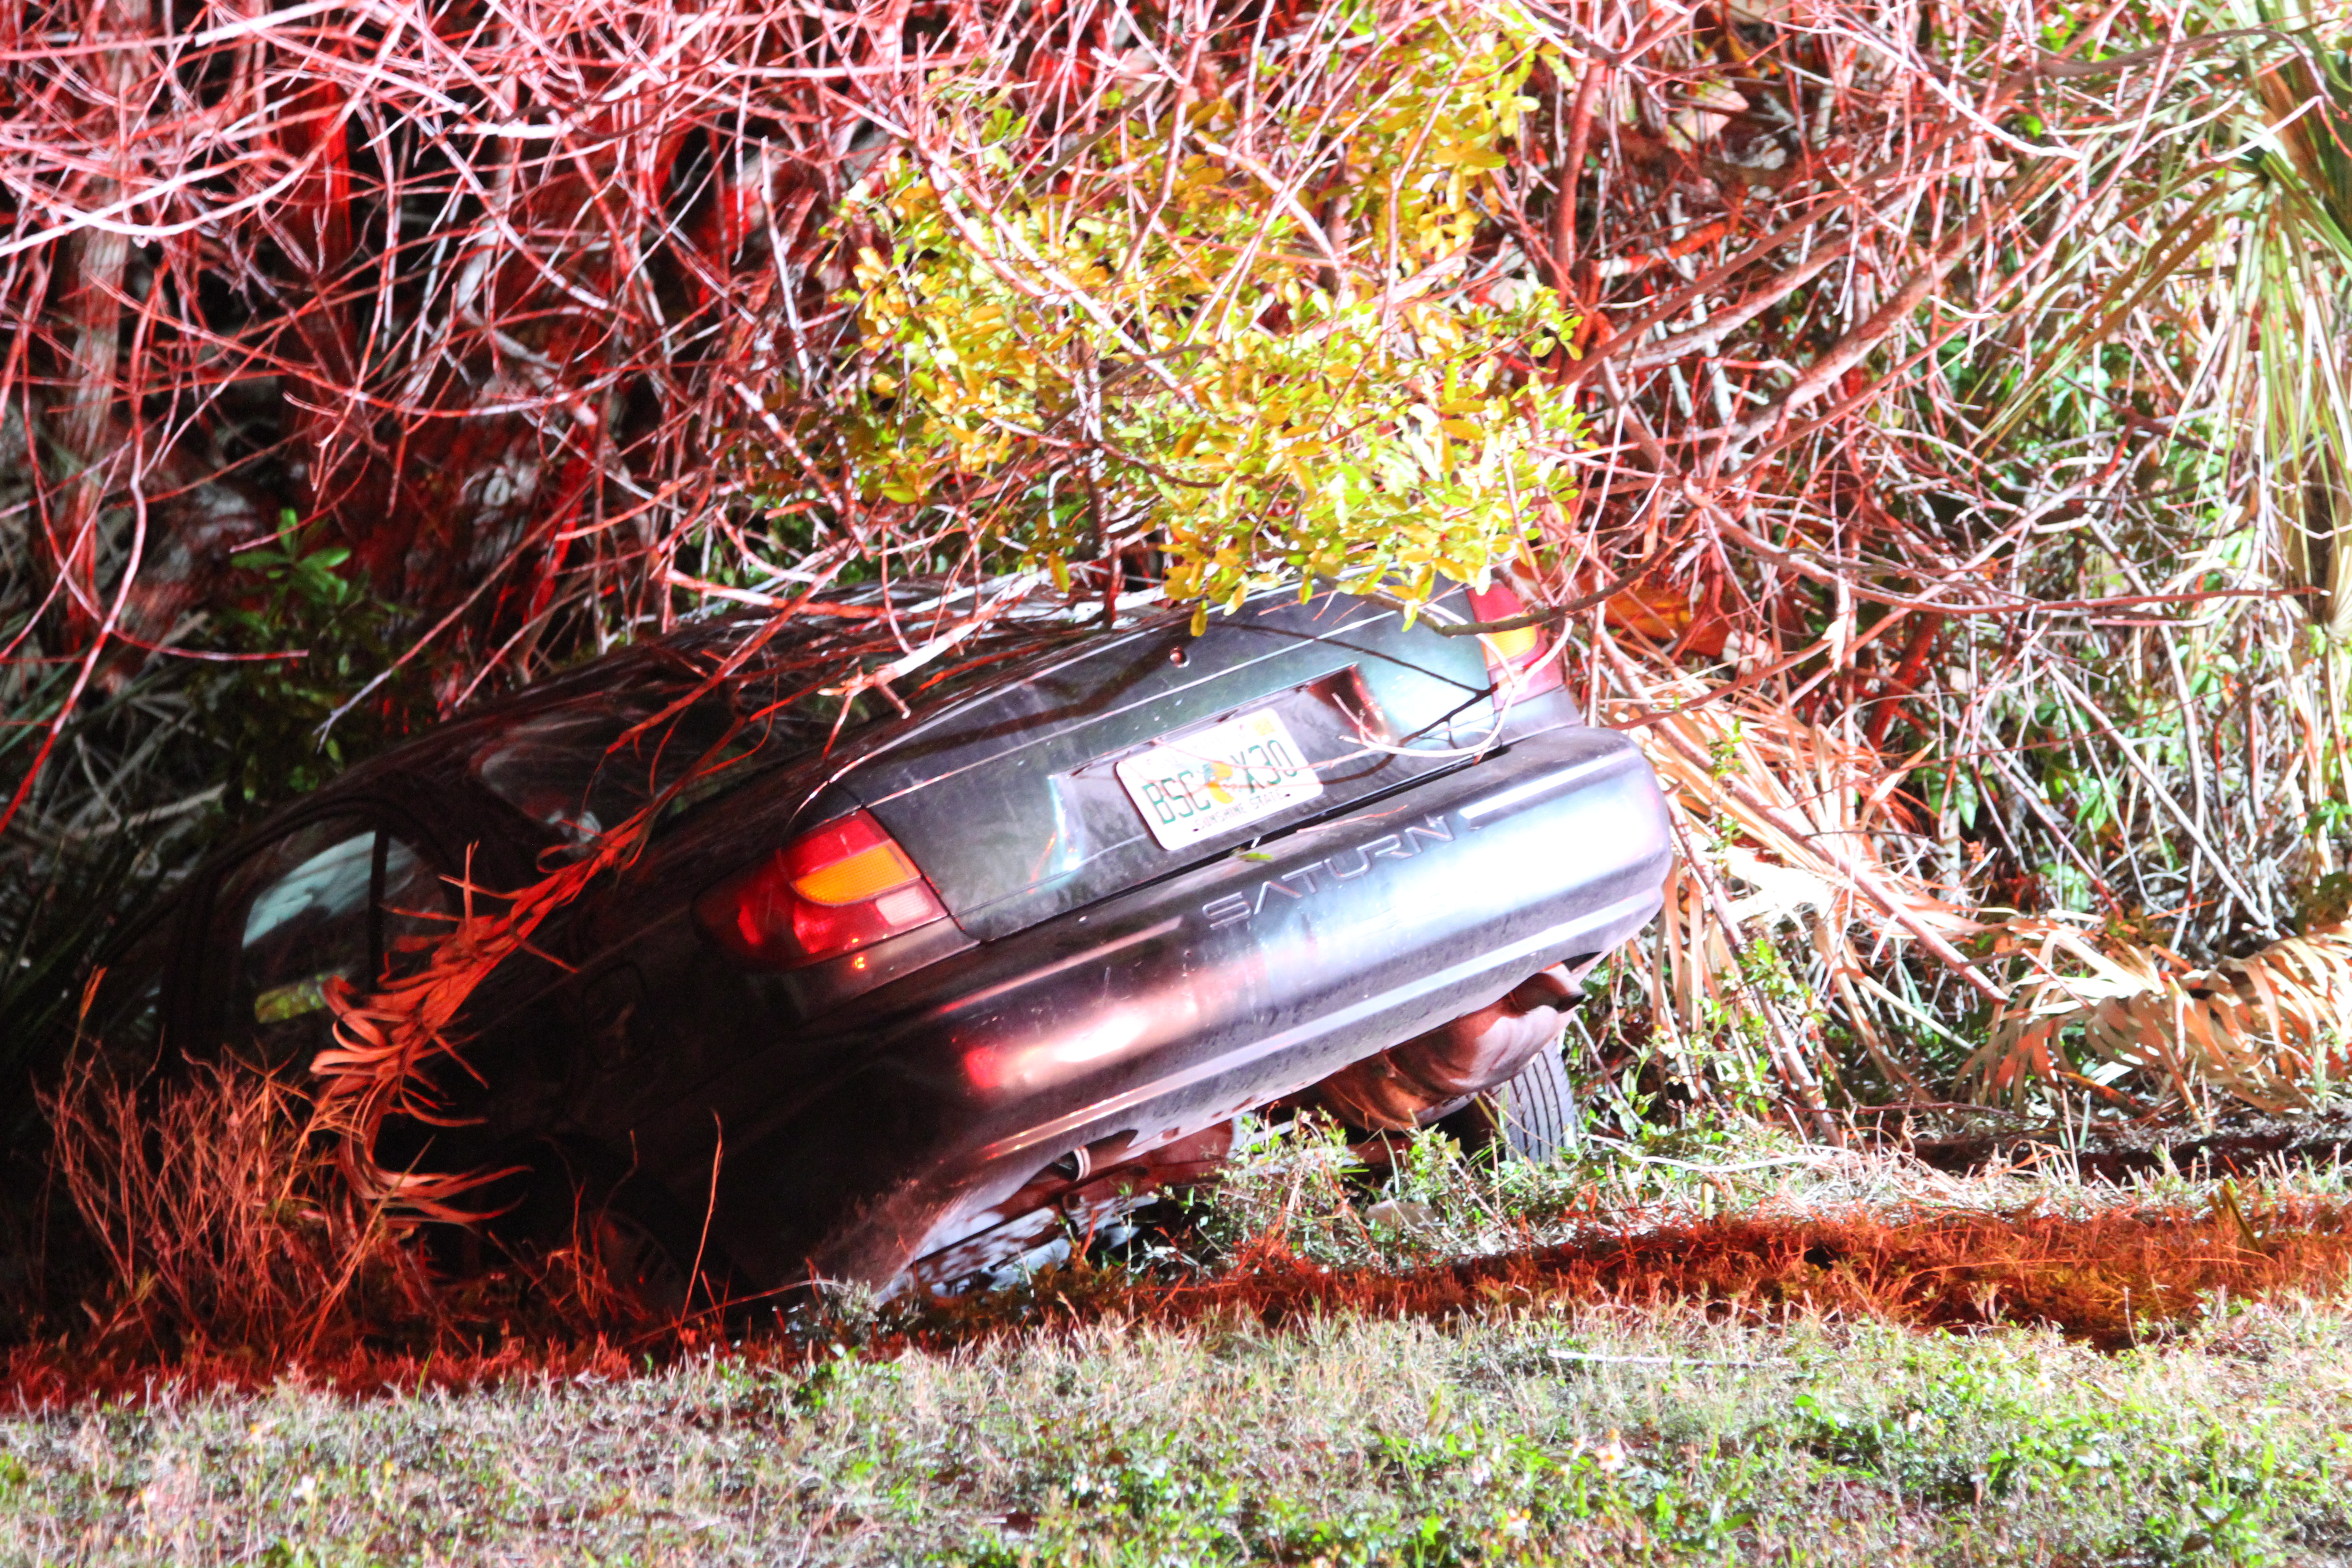 Vehicle crashes into ditch after leaving the roadway in Largo